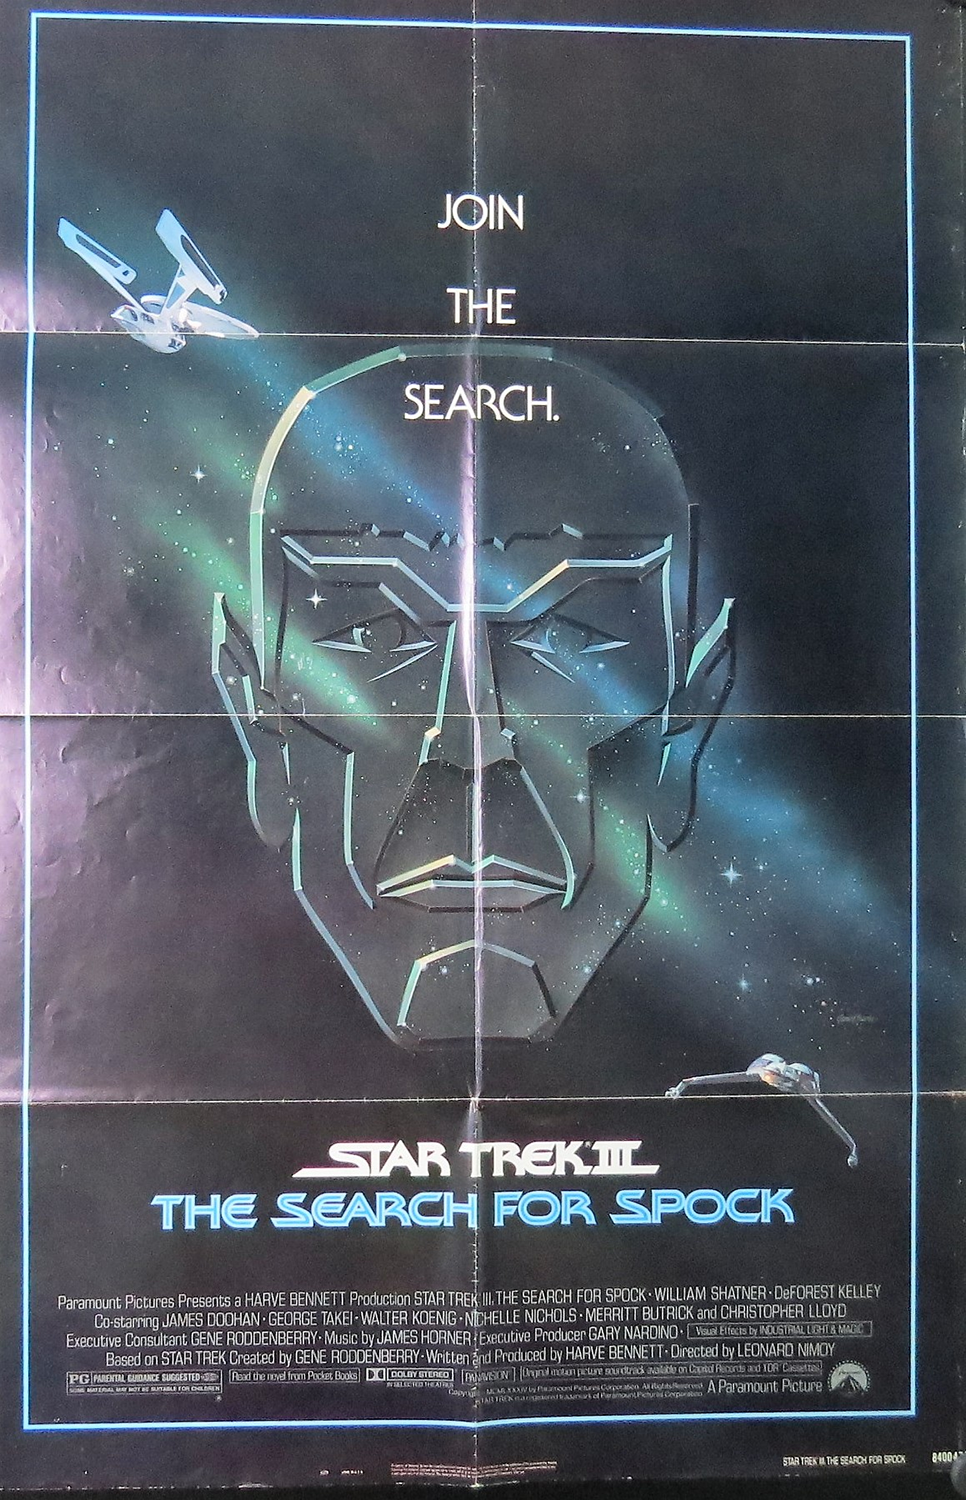 1984 Star Trek: The Search For Spock Film Poster